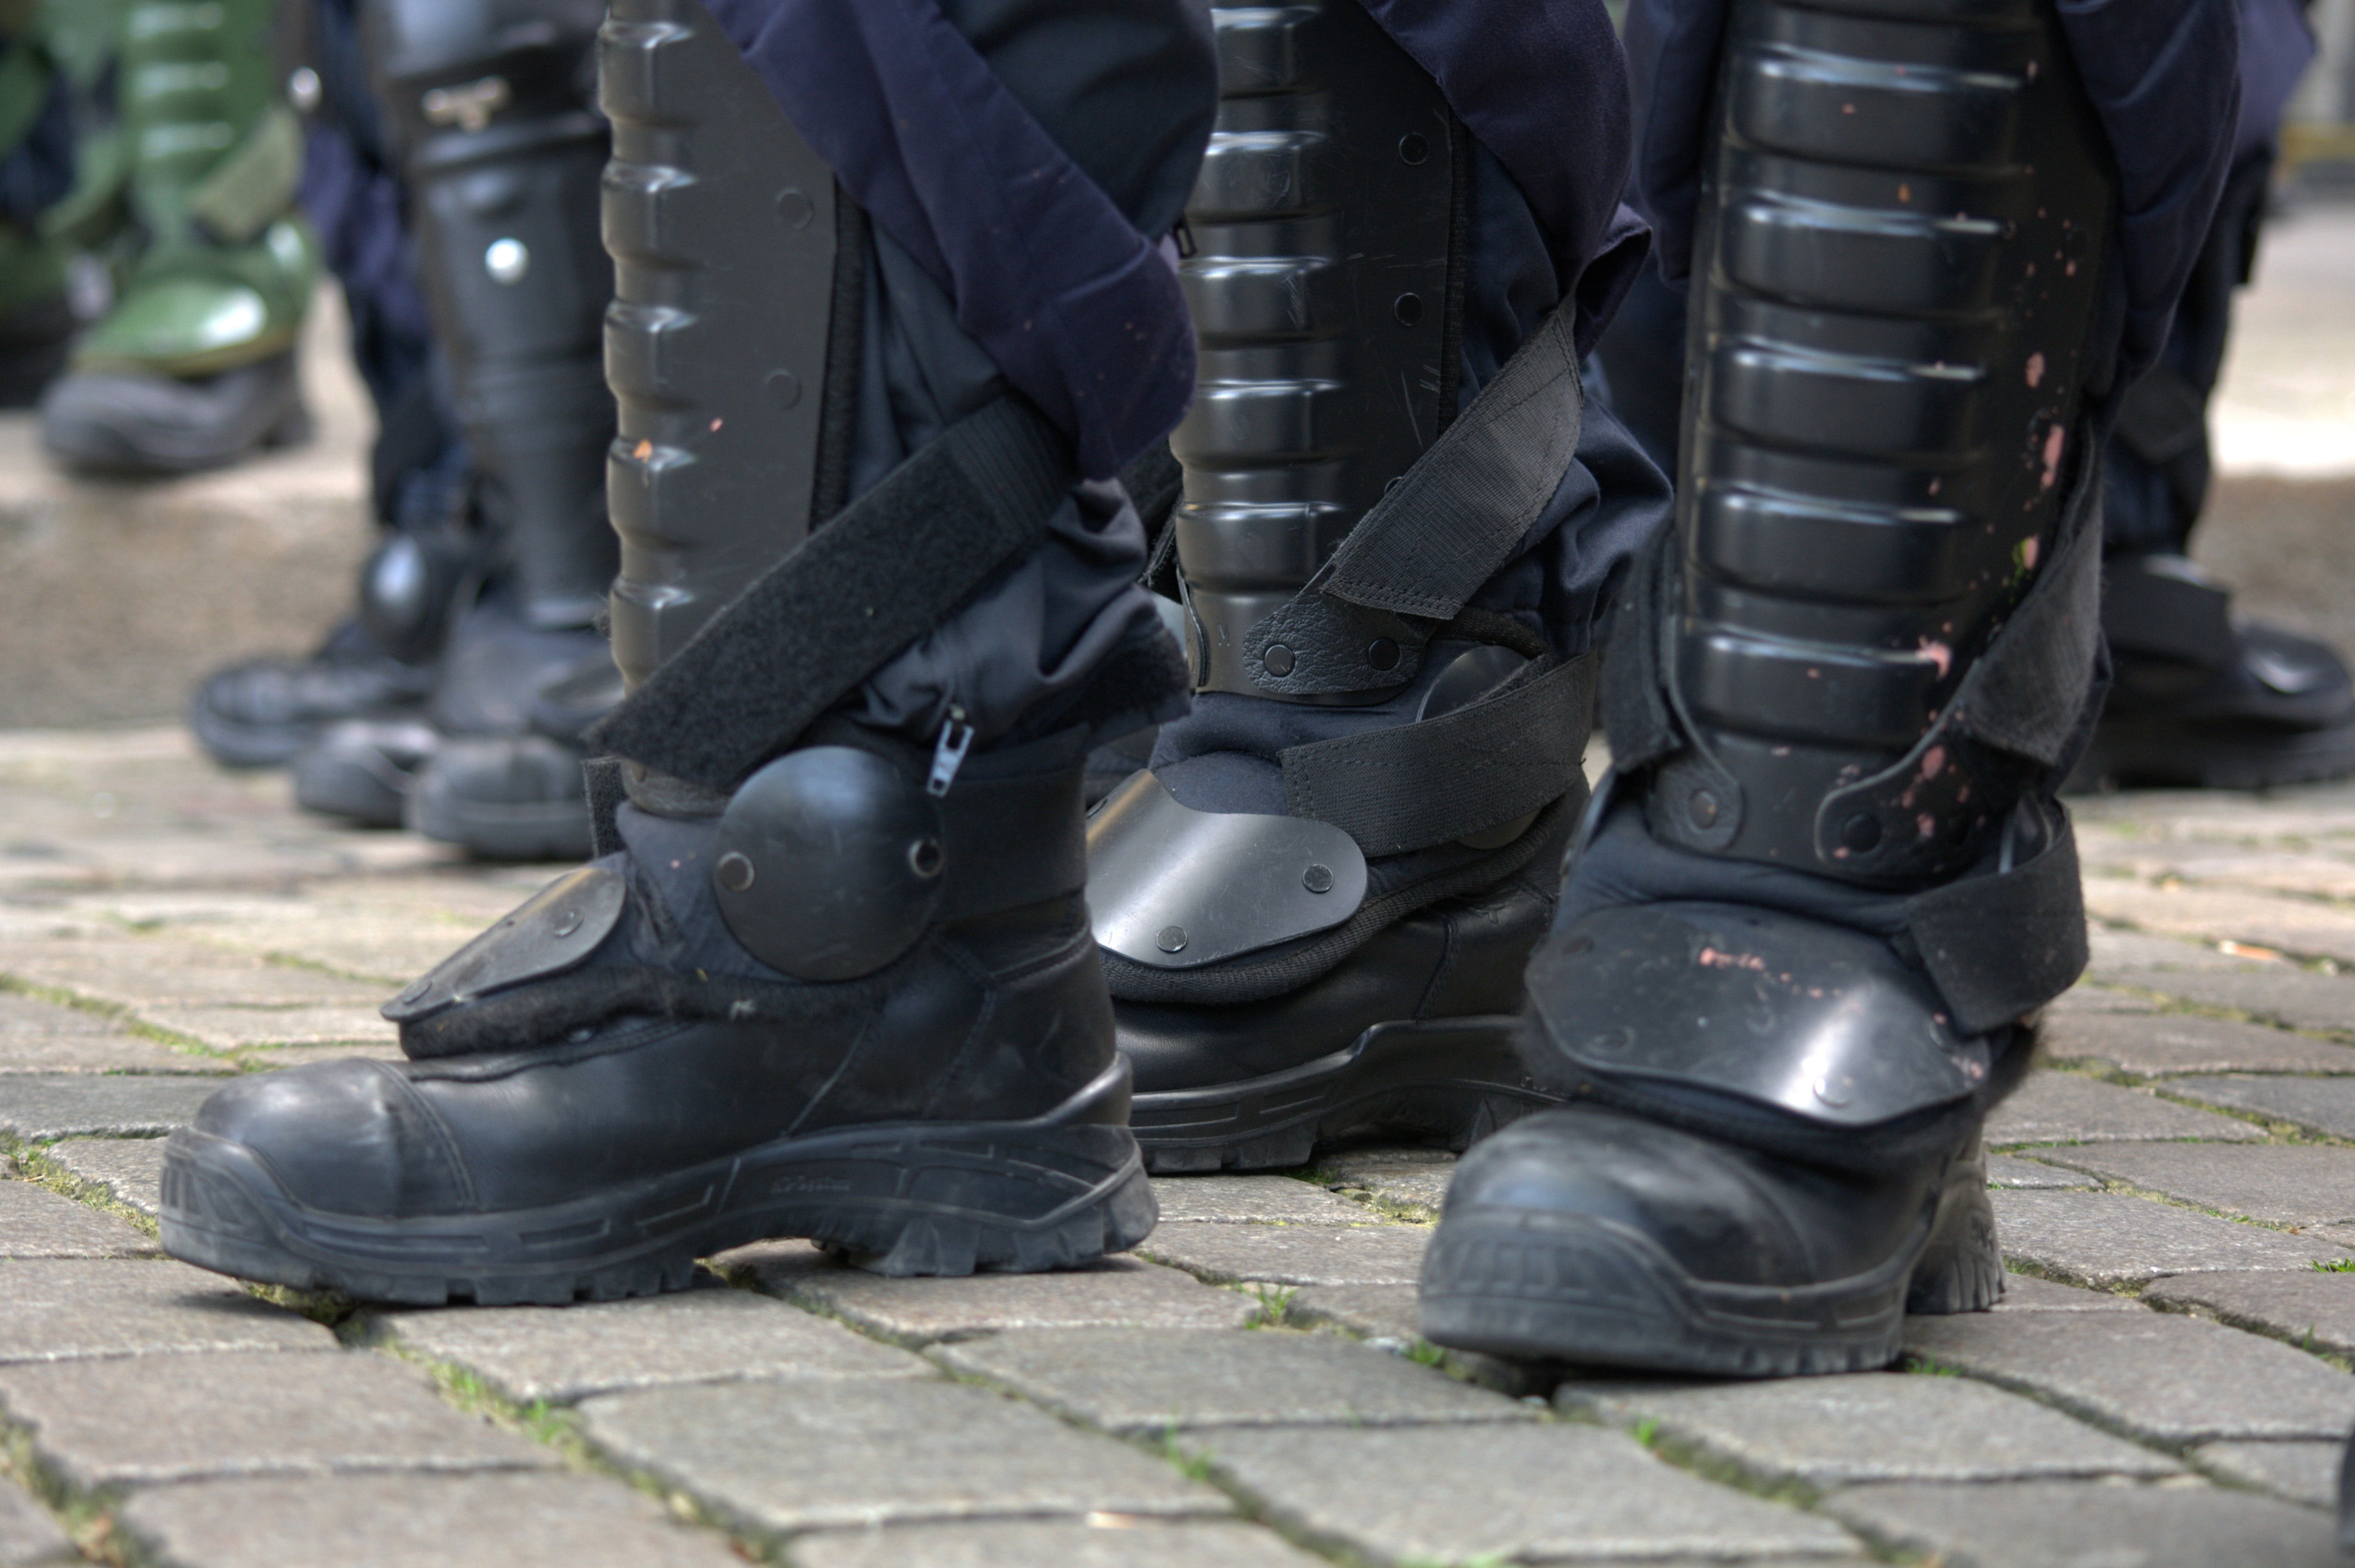 Free stock photo of technology, police, dispute, boots